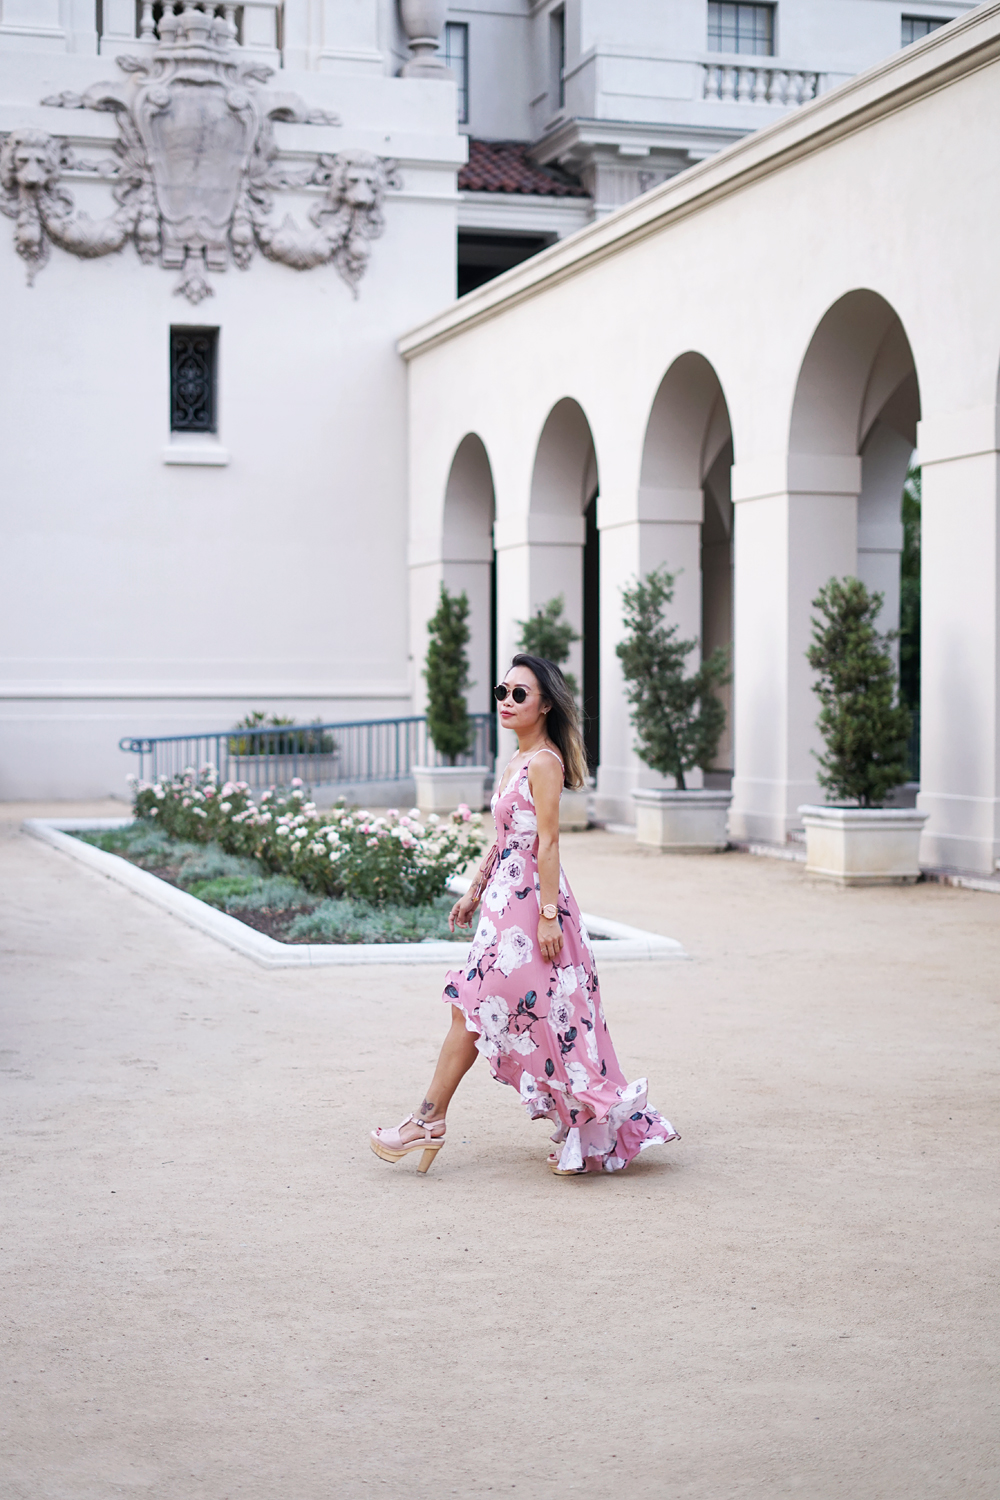 03pasadena-cityhall-floral-rose-maxi-dress-fashion-ootd